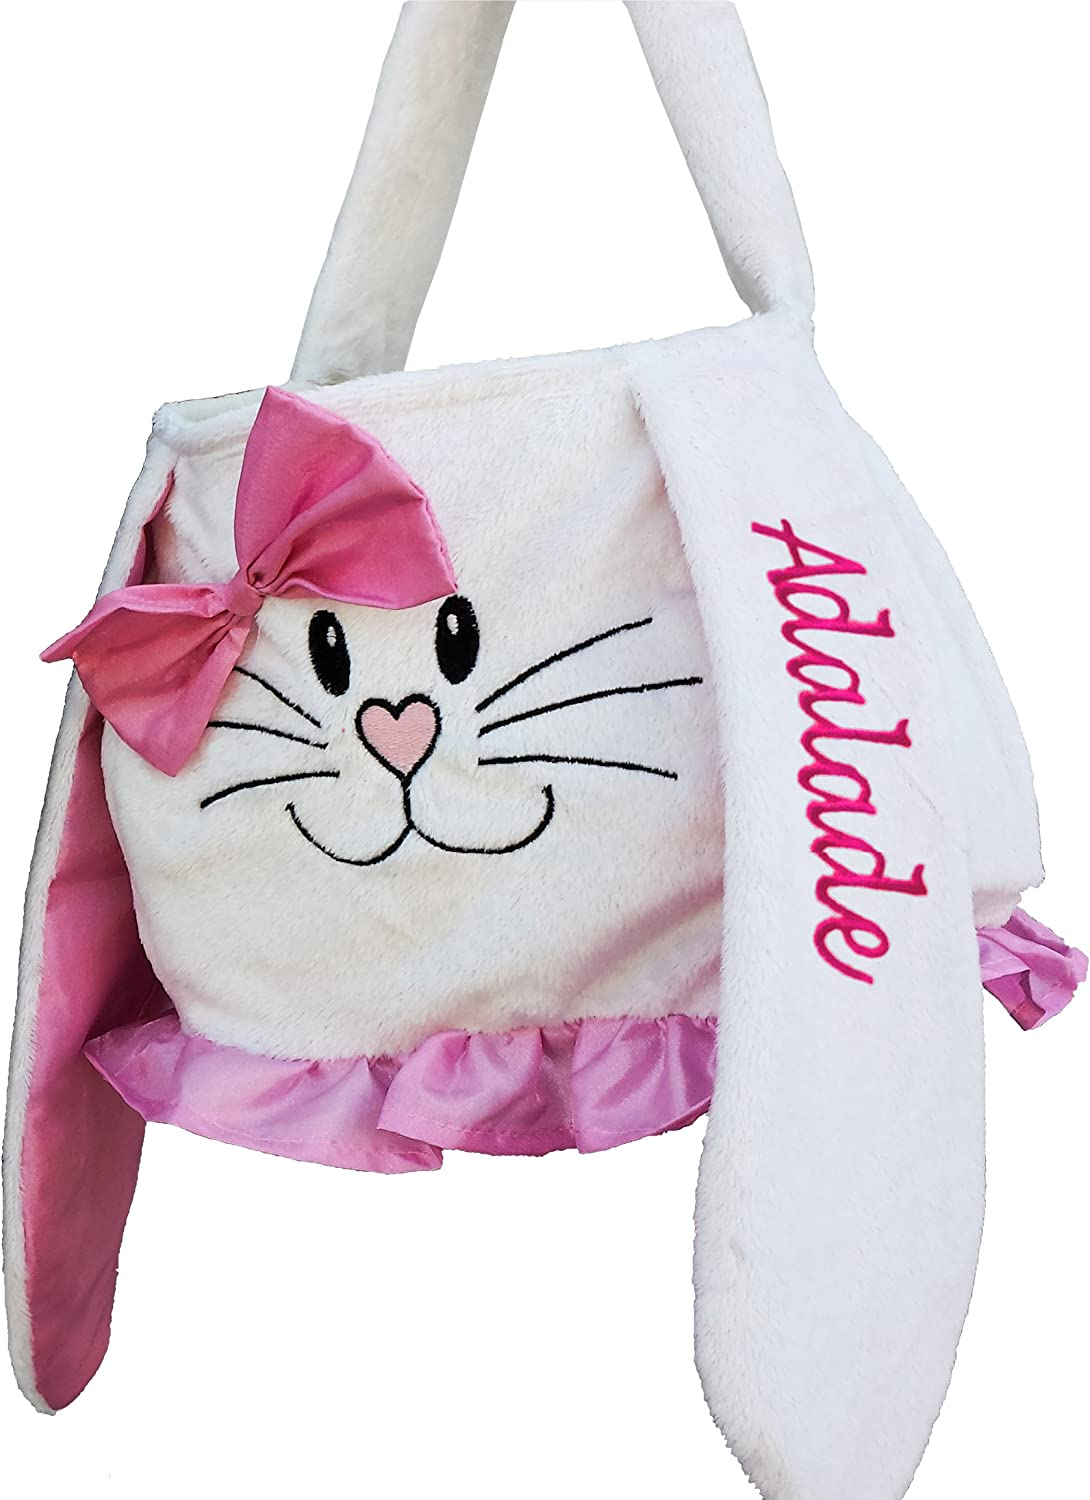 Personalized Easter Basket Pink White Plush Easter Basket Tote Bunny Bucket Embroidered with Kids Name